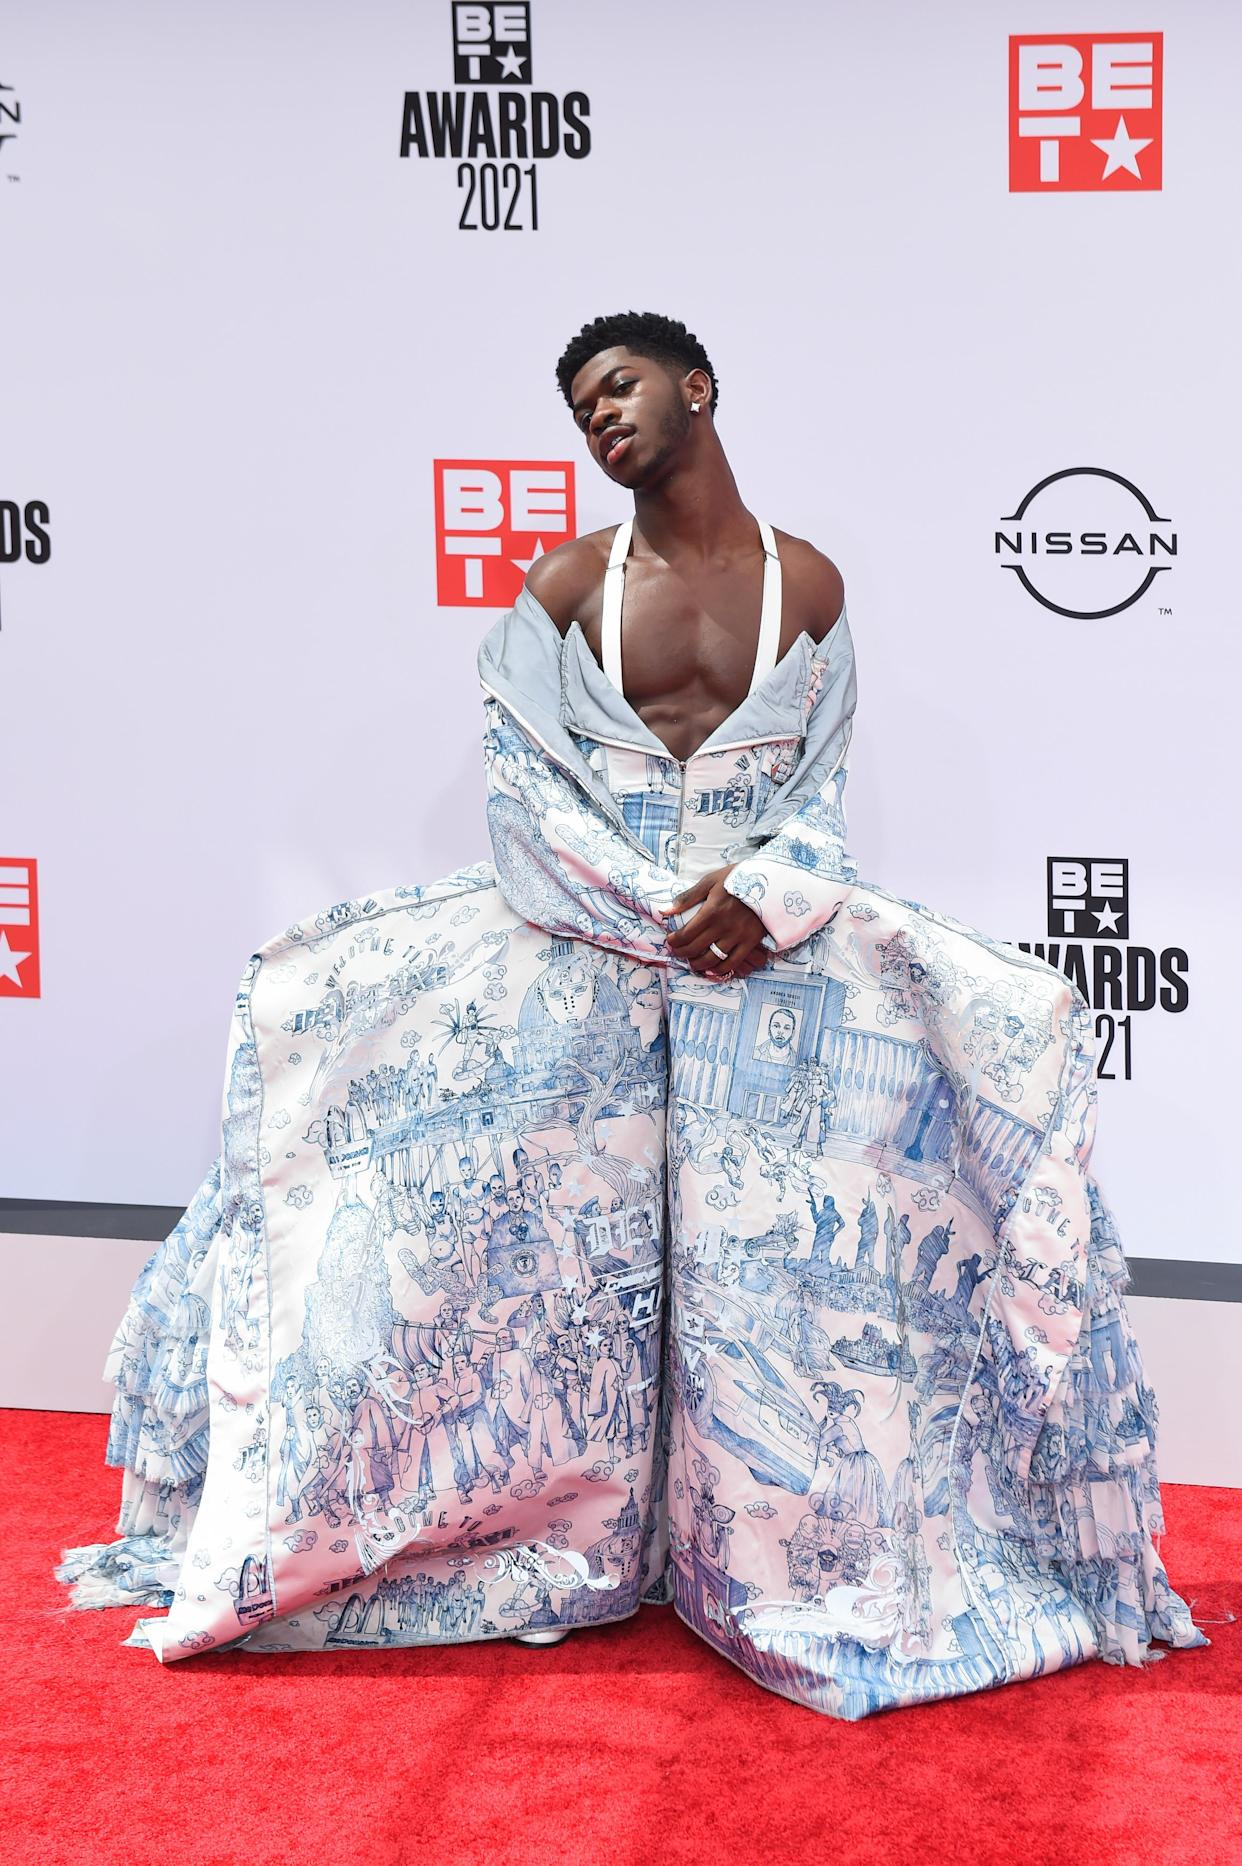 Lil Nas X attends the 2021 BET Awards. (Photo: Aaron J. Thornton/Getty Images)